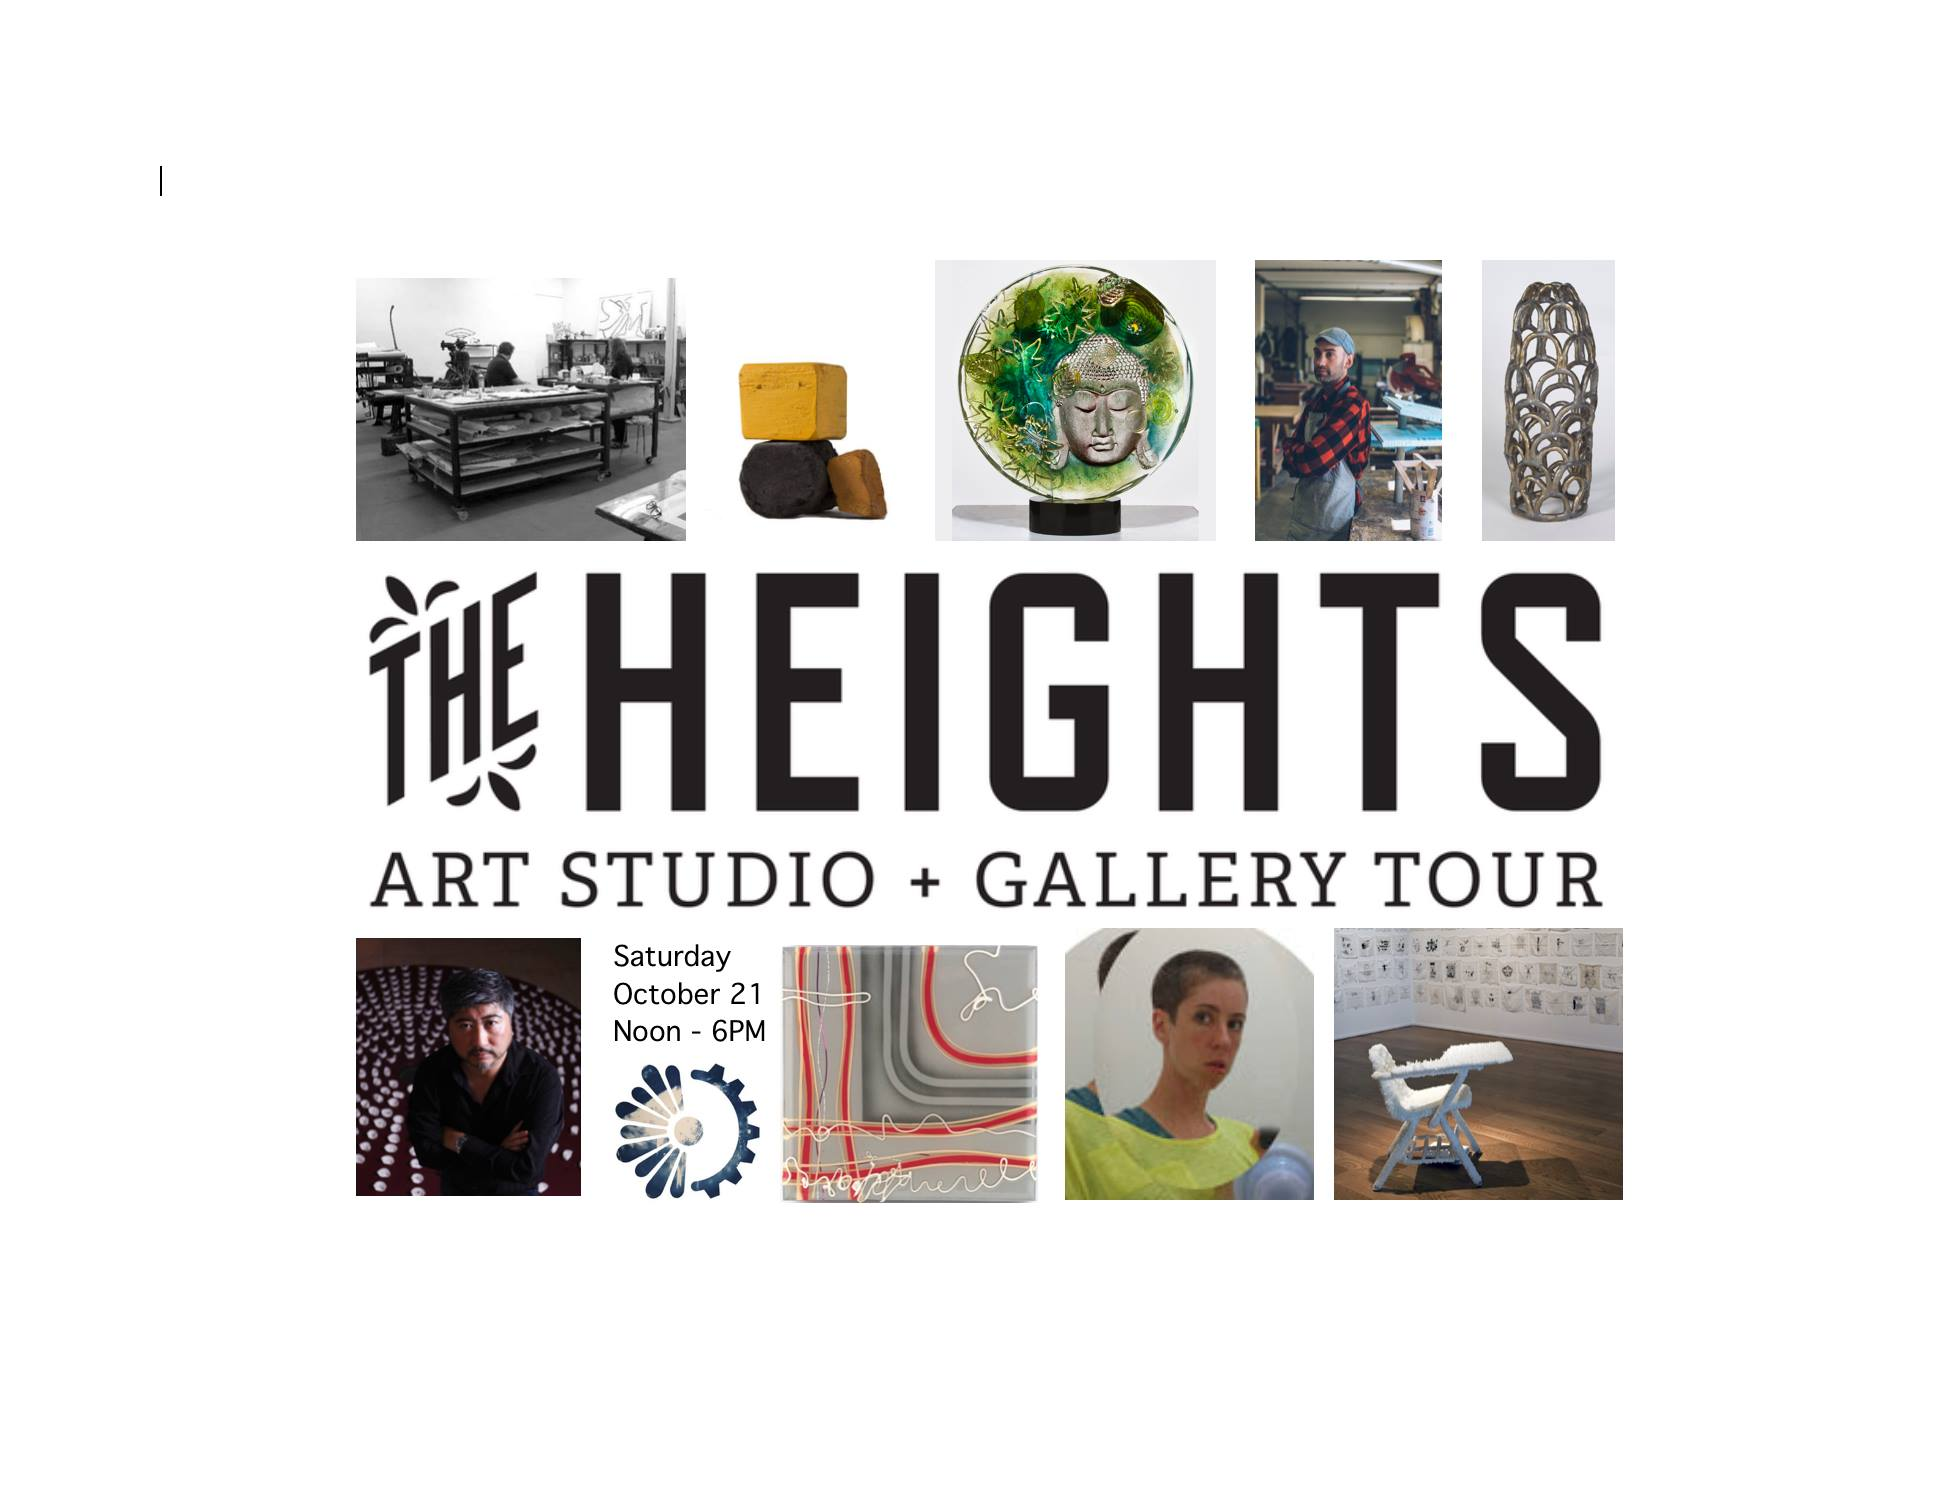 The Heights Art Studio + Gallery Tour